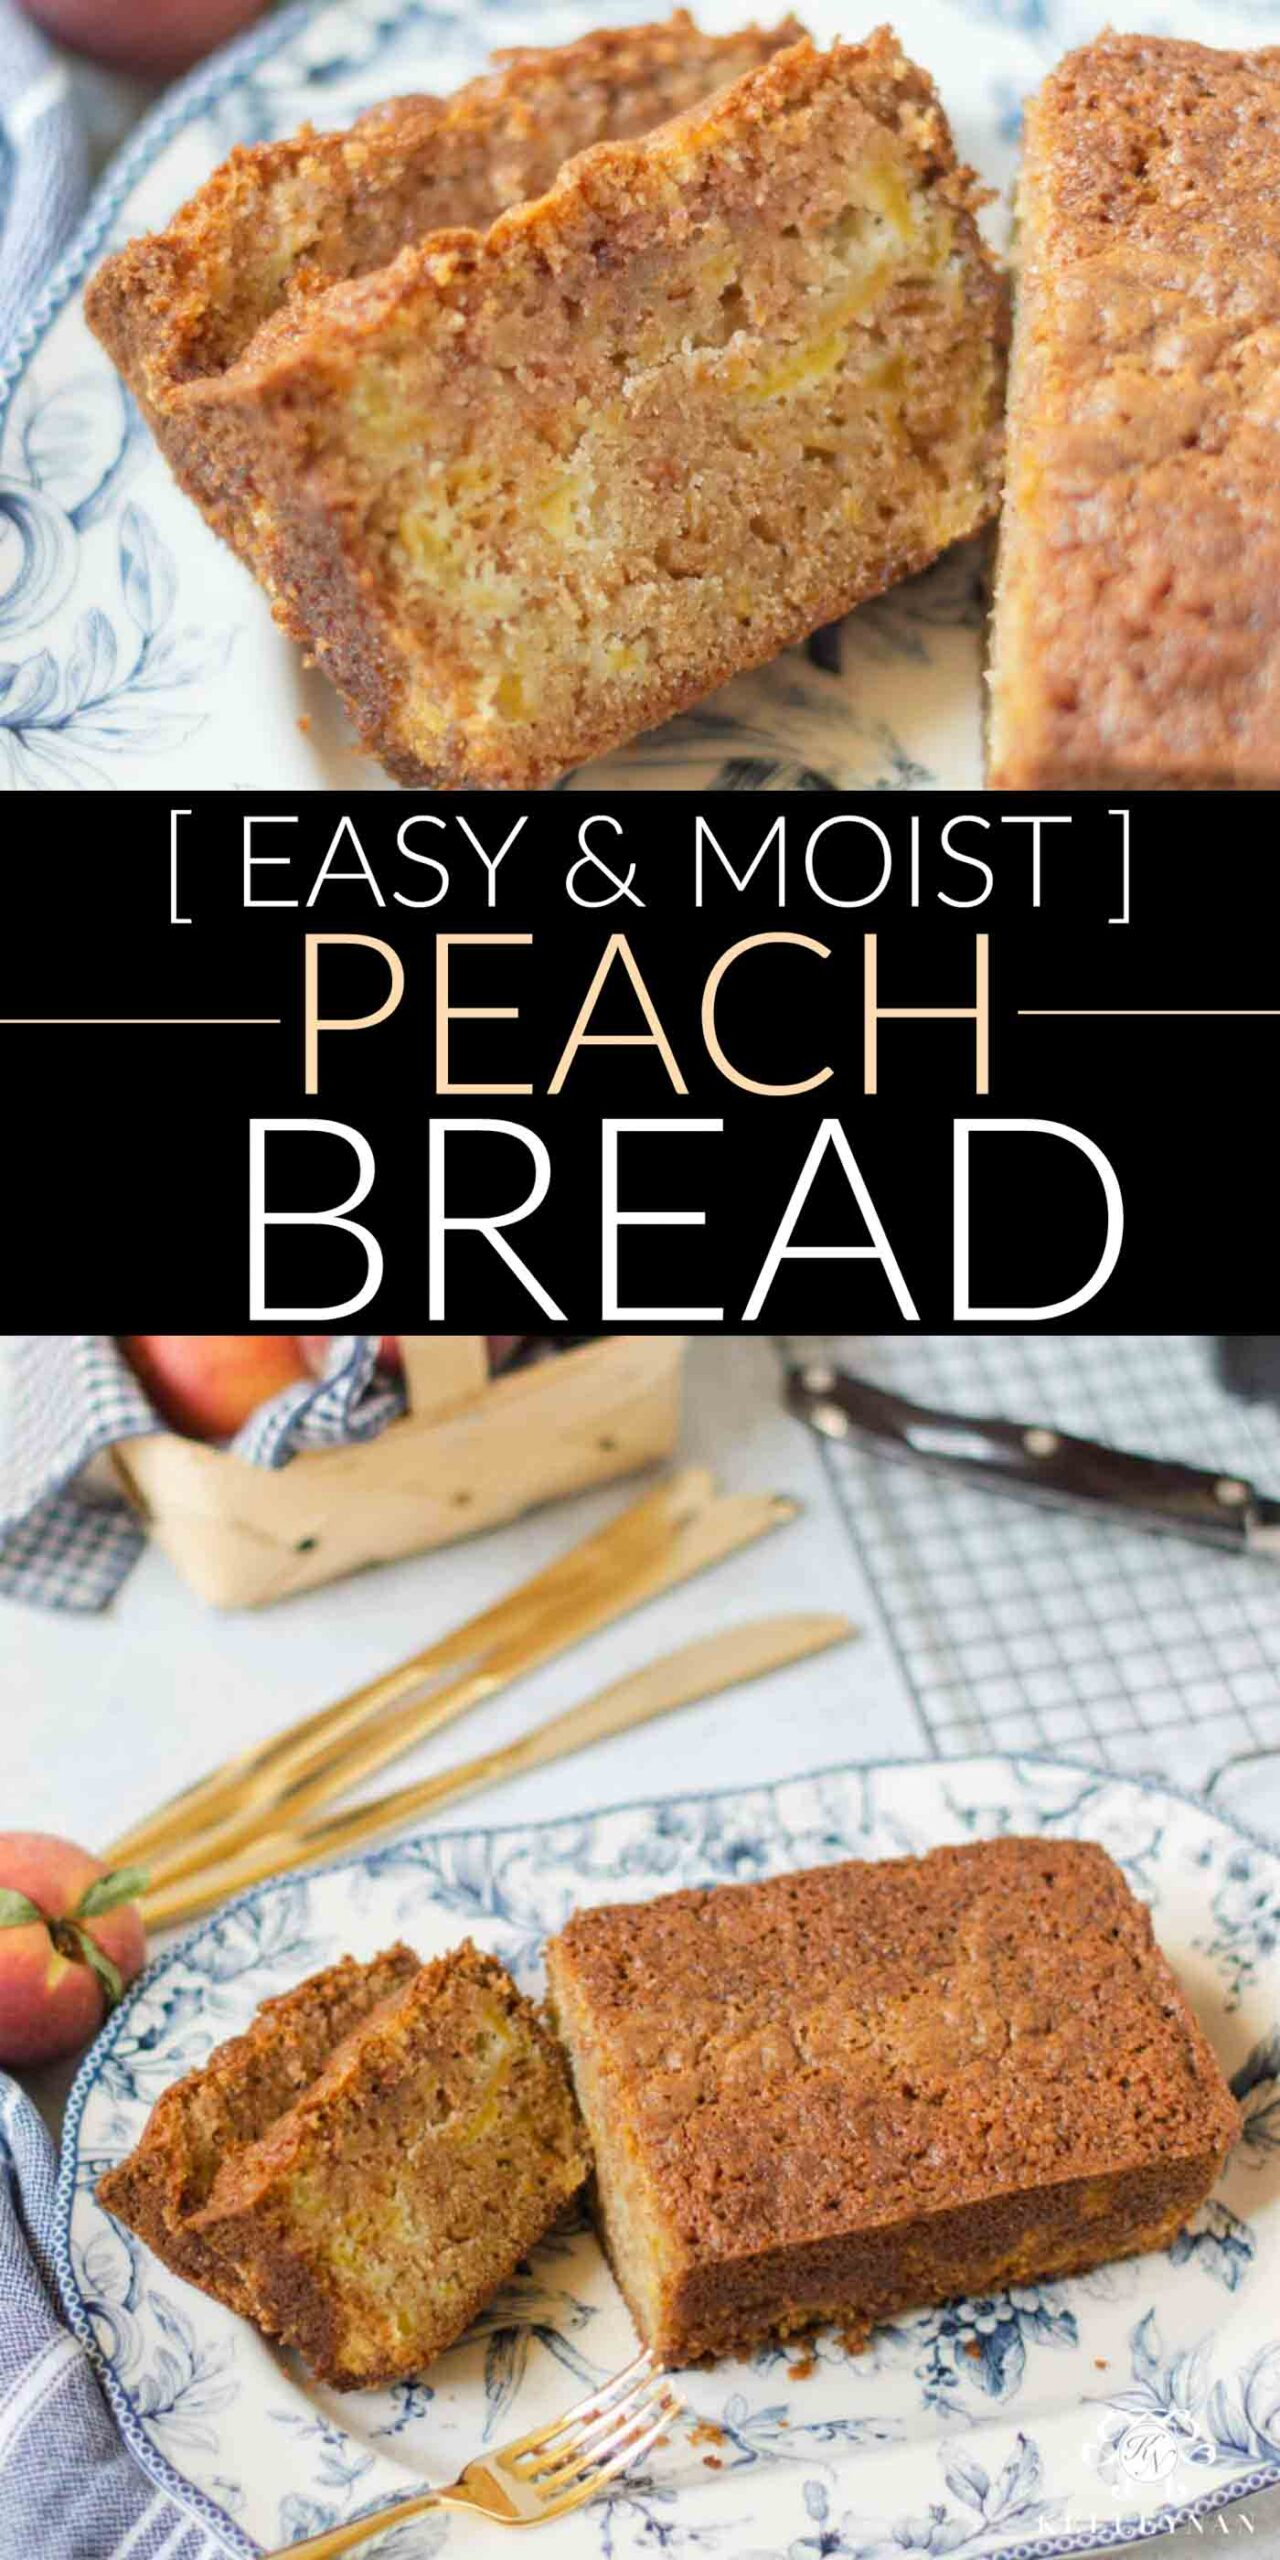 Switch it up! This easy, moist peach bread will be an awesome change from the banana bread you're used to!